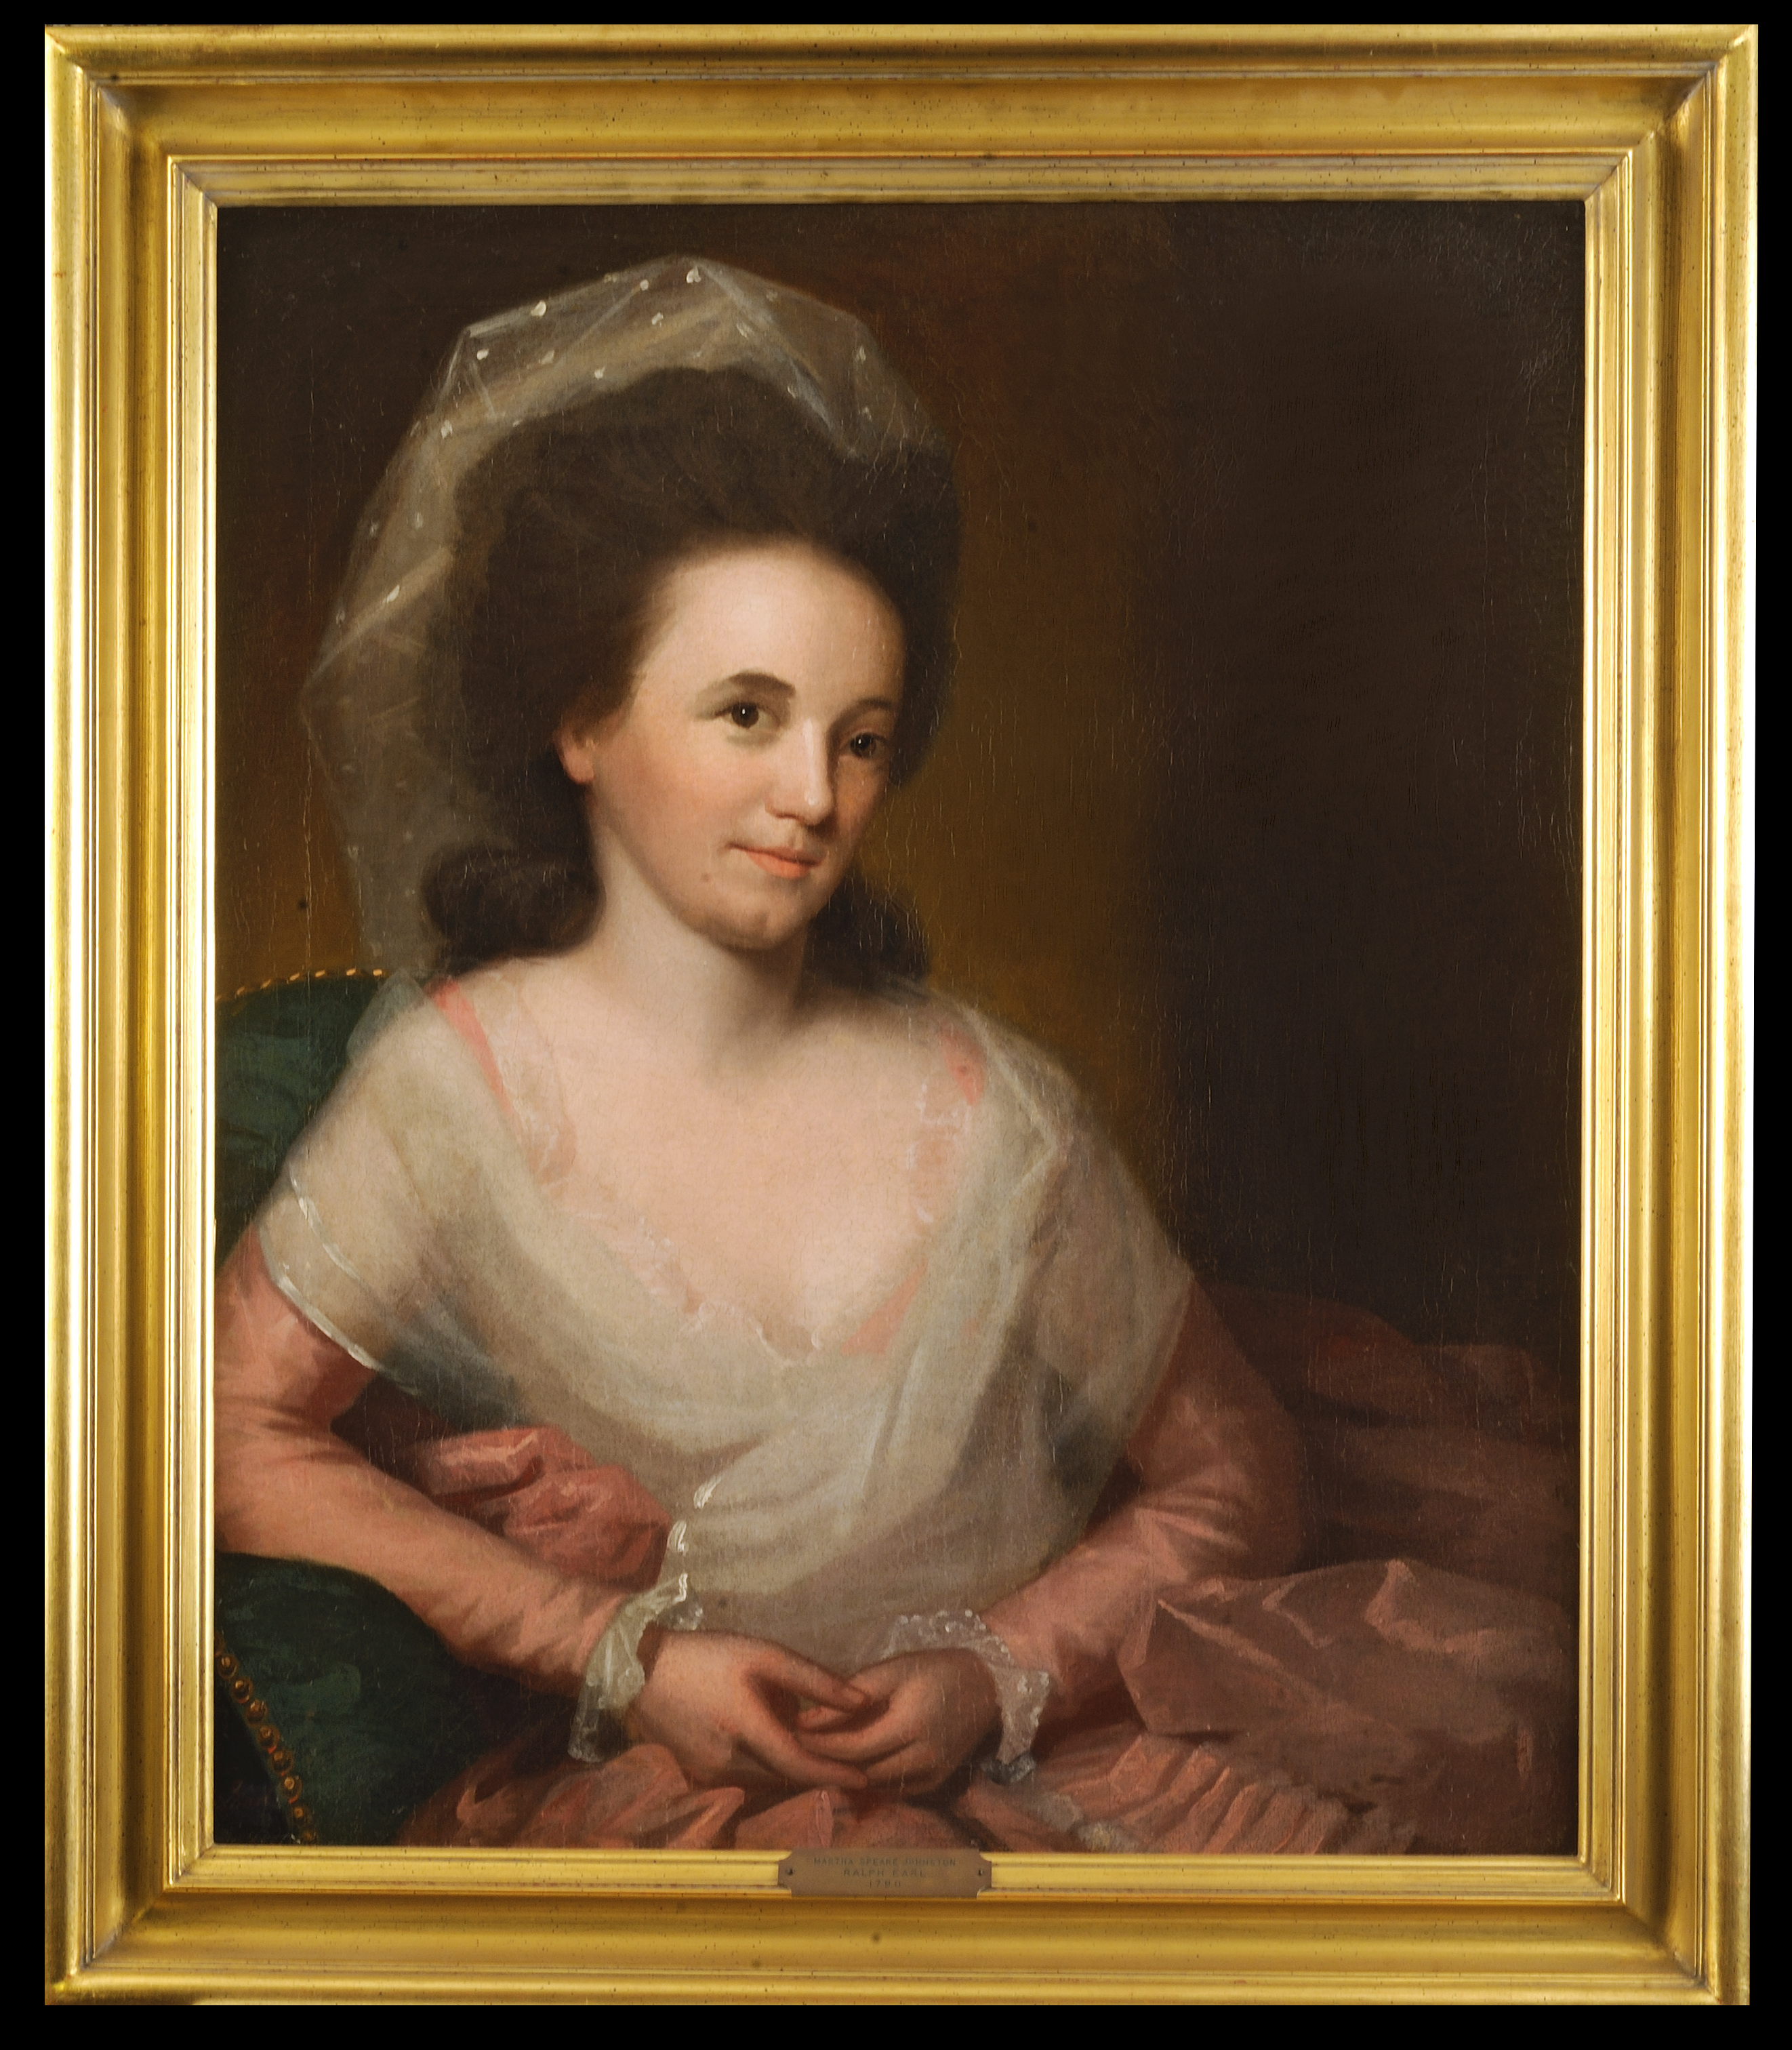 Mrs. John Johnston by Earl, 1785